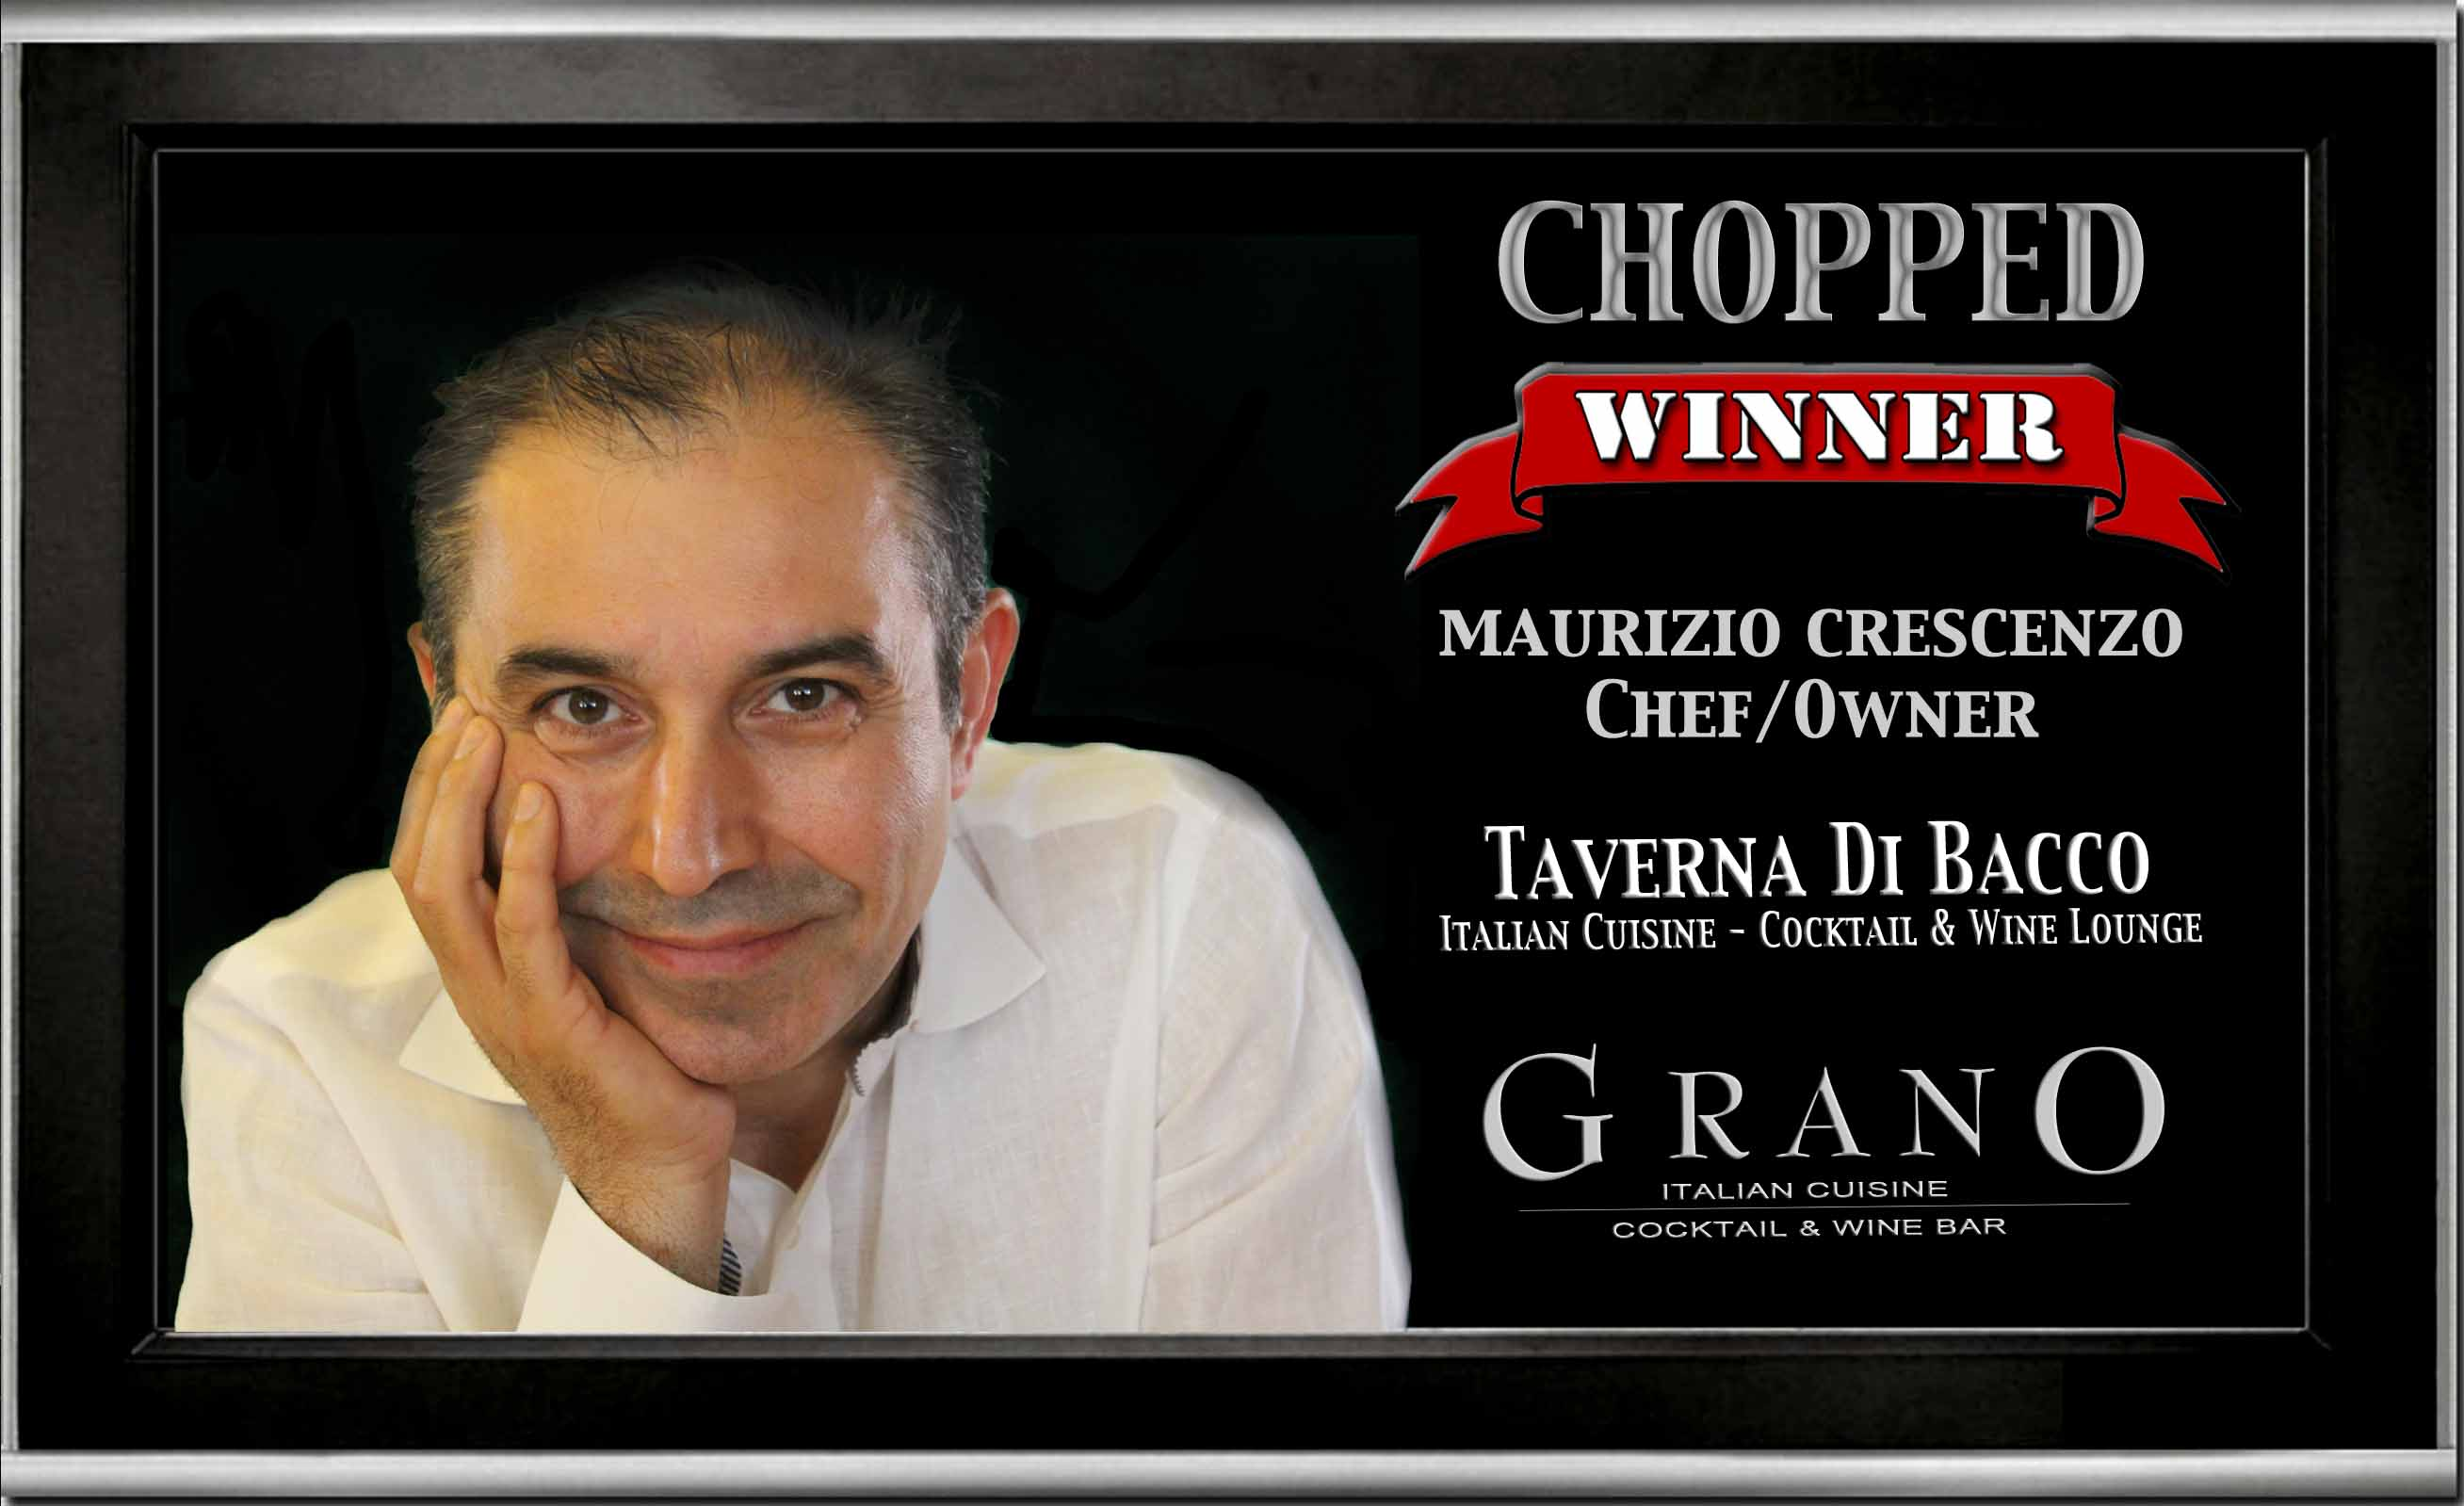 Grano wins Chopped @ FoodNetwork